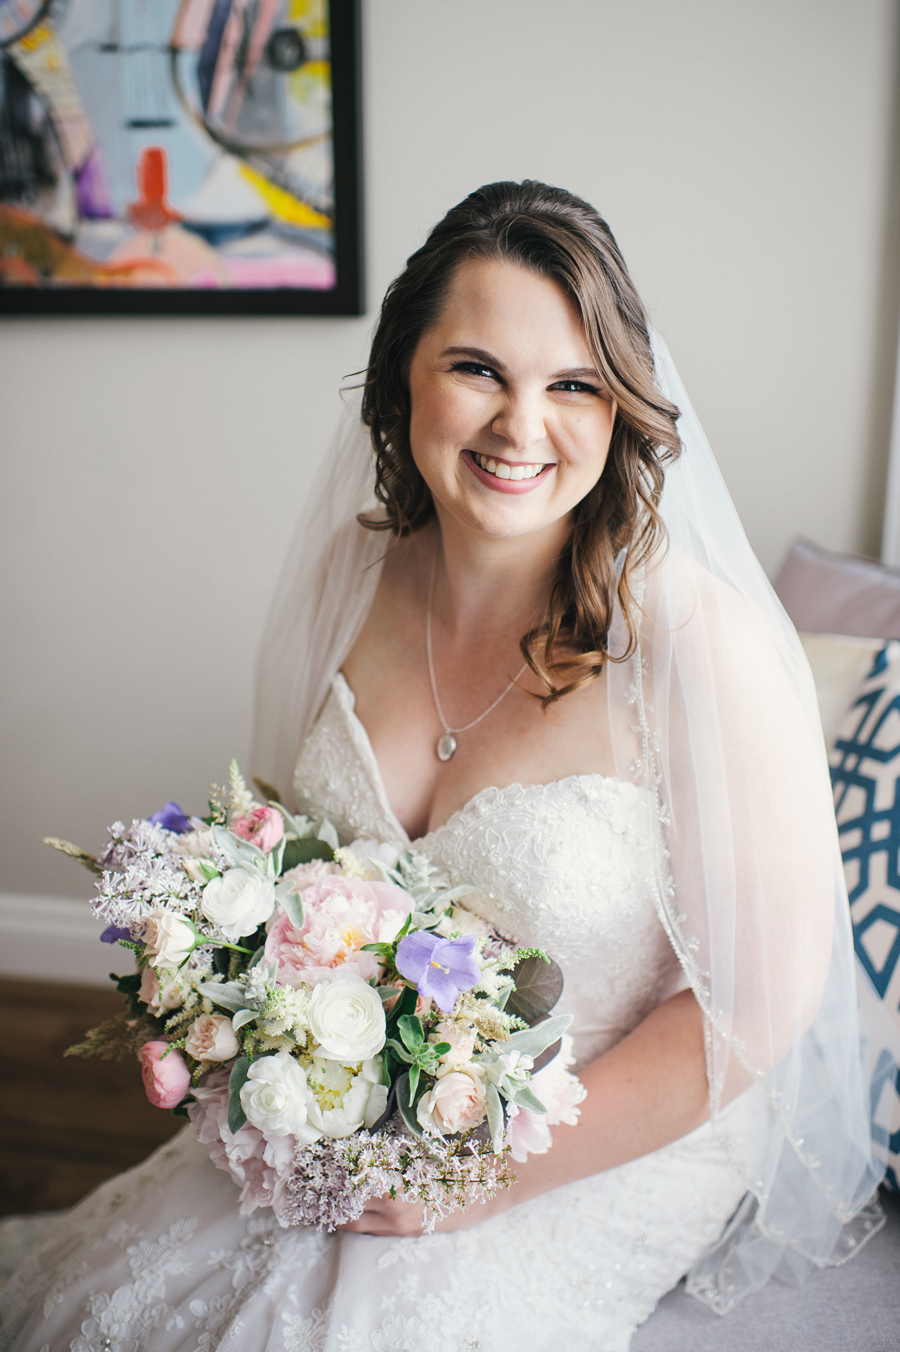 portrait of bride with her veil on and holding bouquet